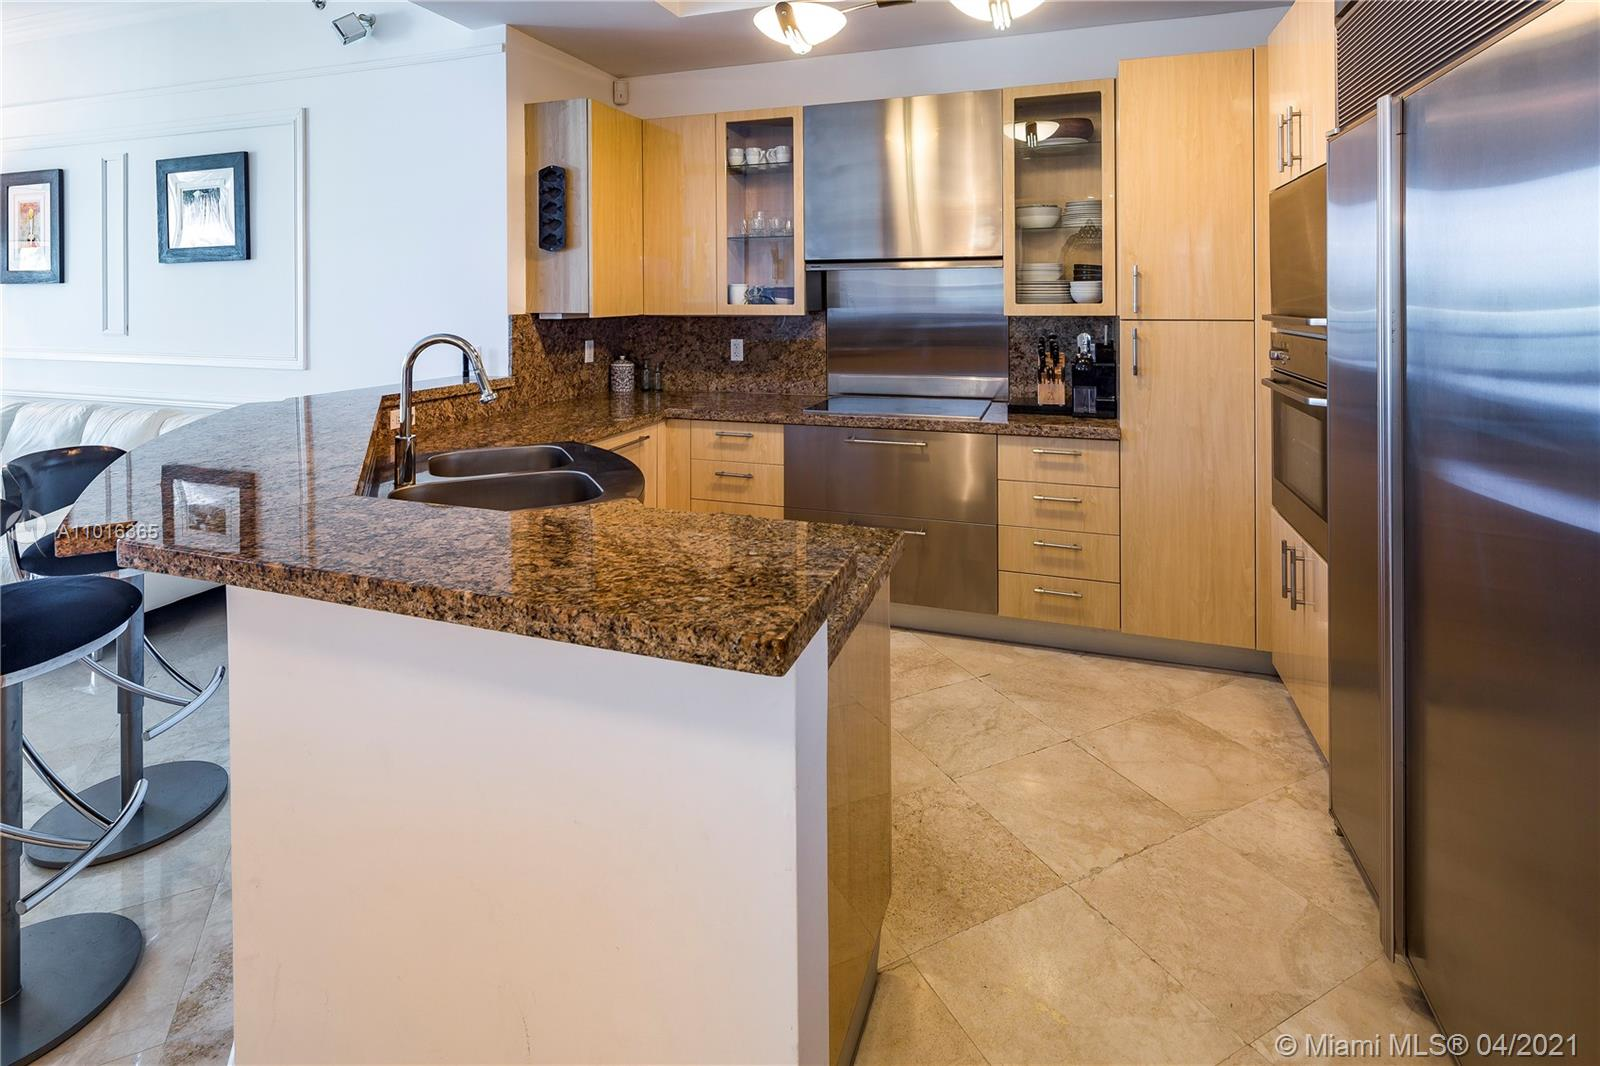 Photo of Continuum South Tower Apt 508